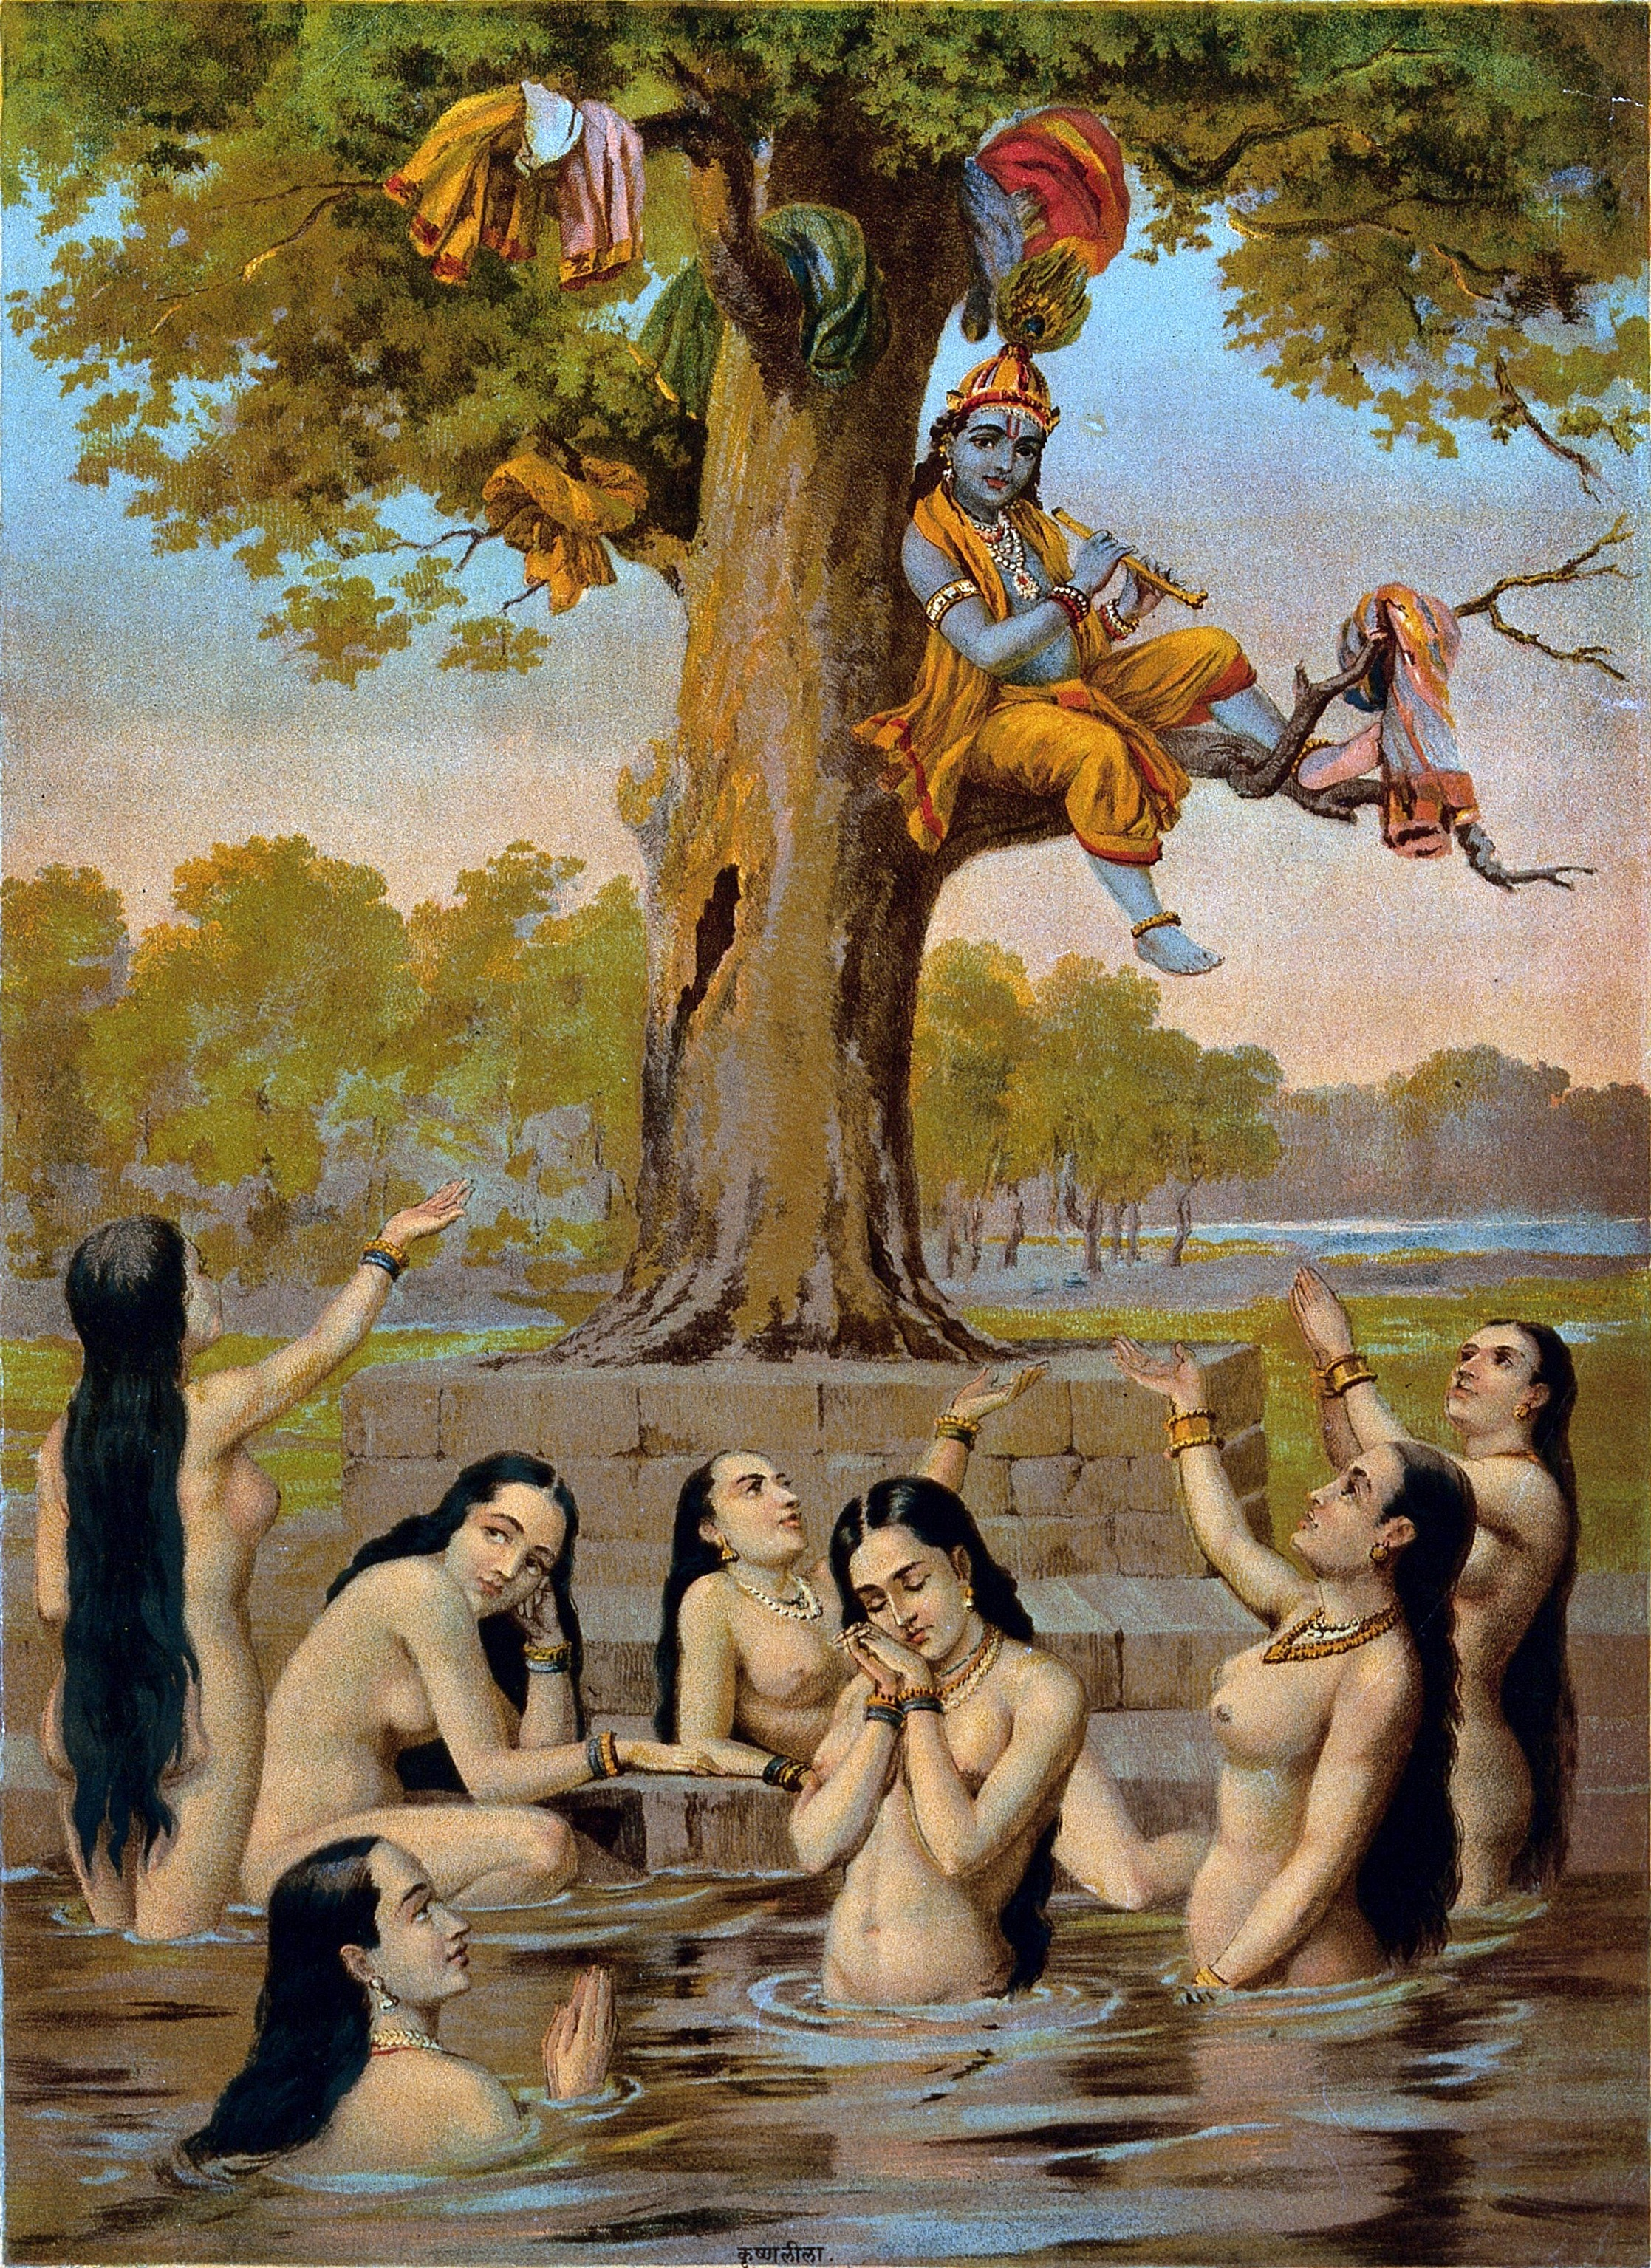 File:Krishna sitting in a tree with all the gopis clothes